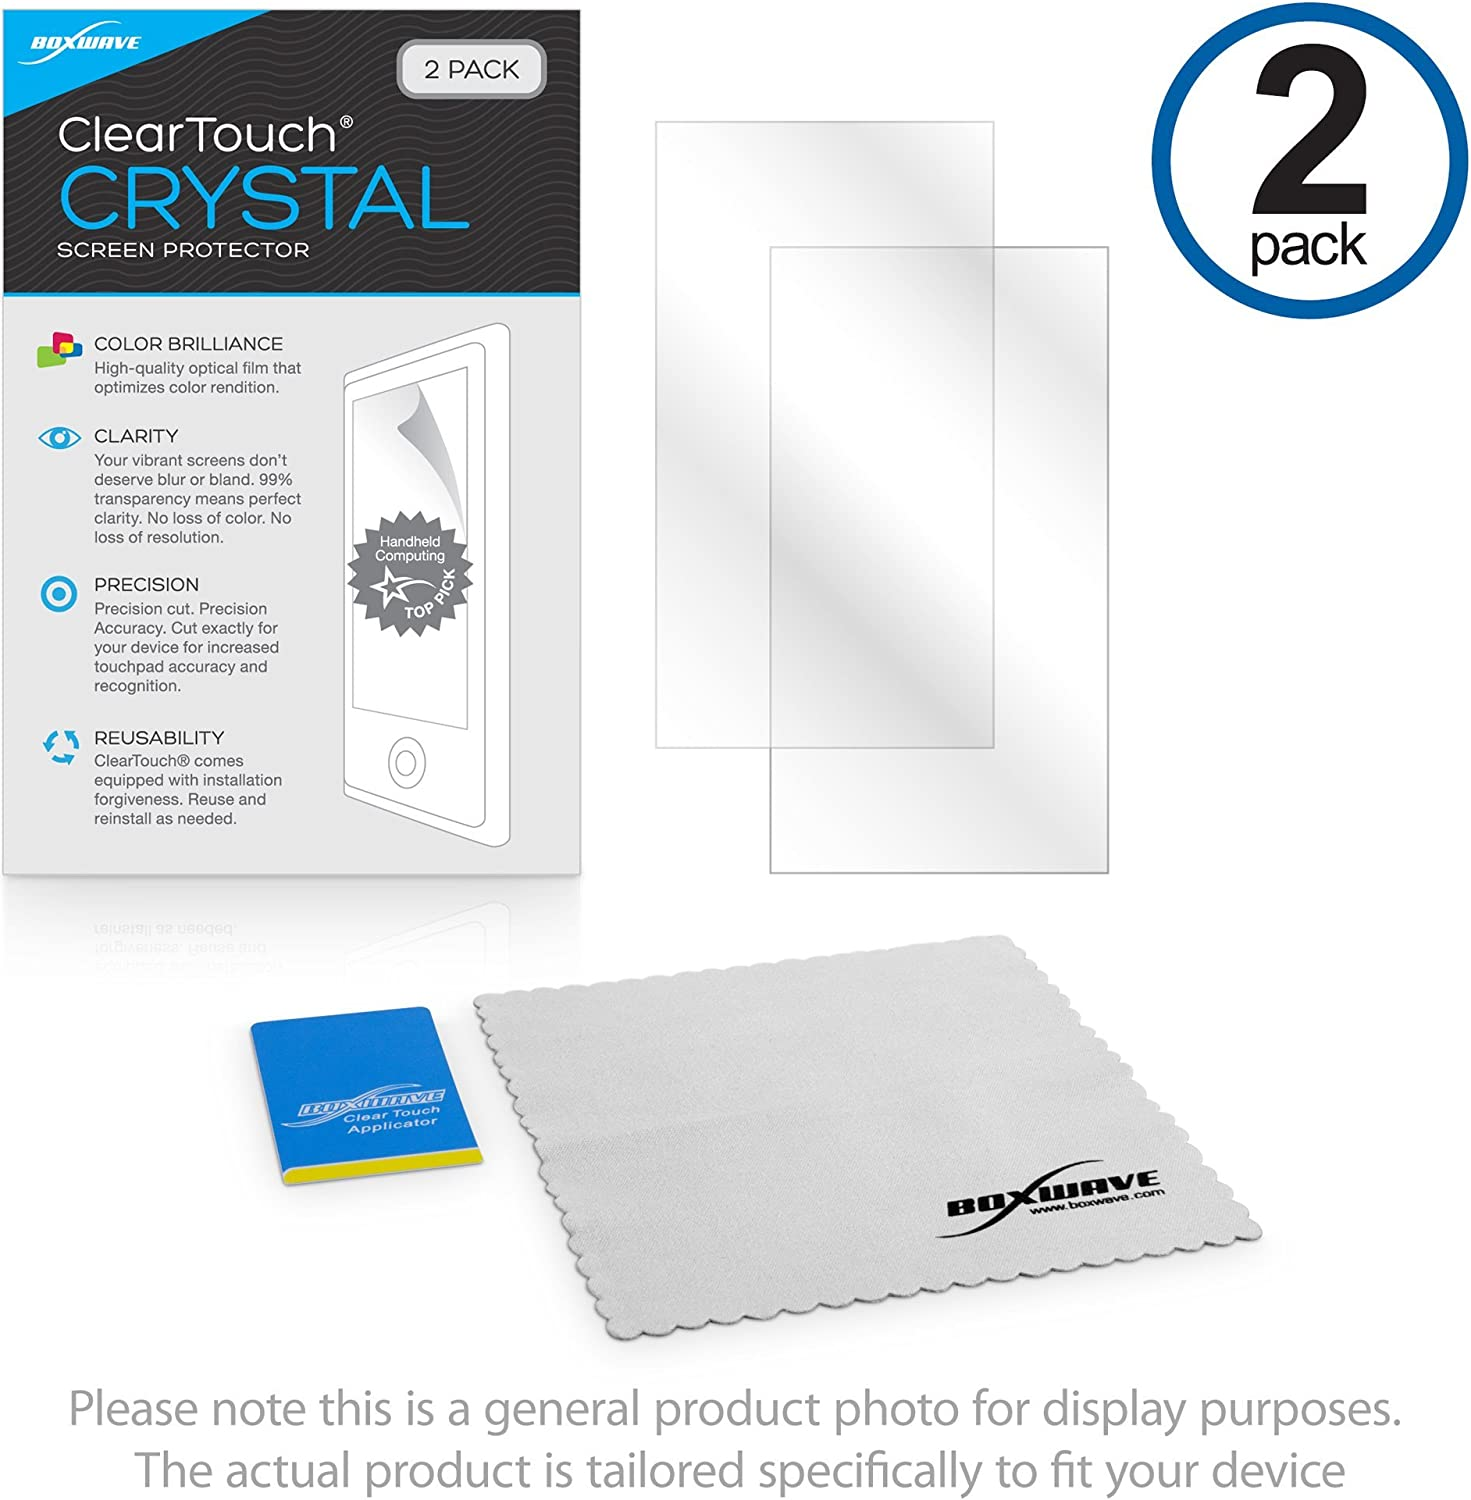 Dell Latitude 7212 Rugged Extreme Tablet Screen Protector, BoxWave¨ [ClearTouch Crystal (2-Pack)] HD Film Skin - Shields from Scratches for Dell Latitude Rugged 12